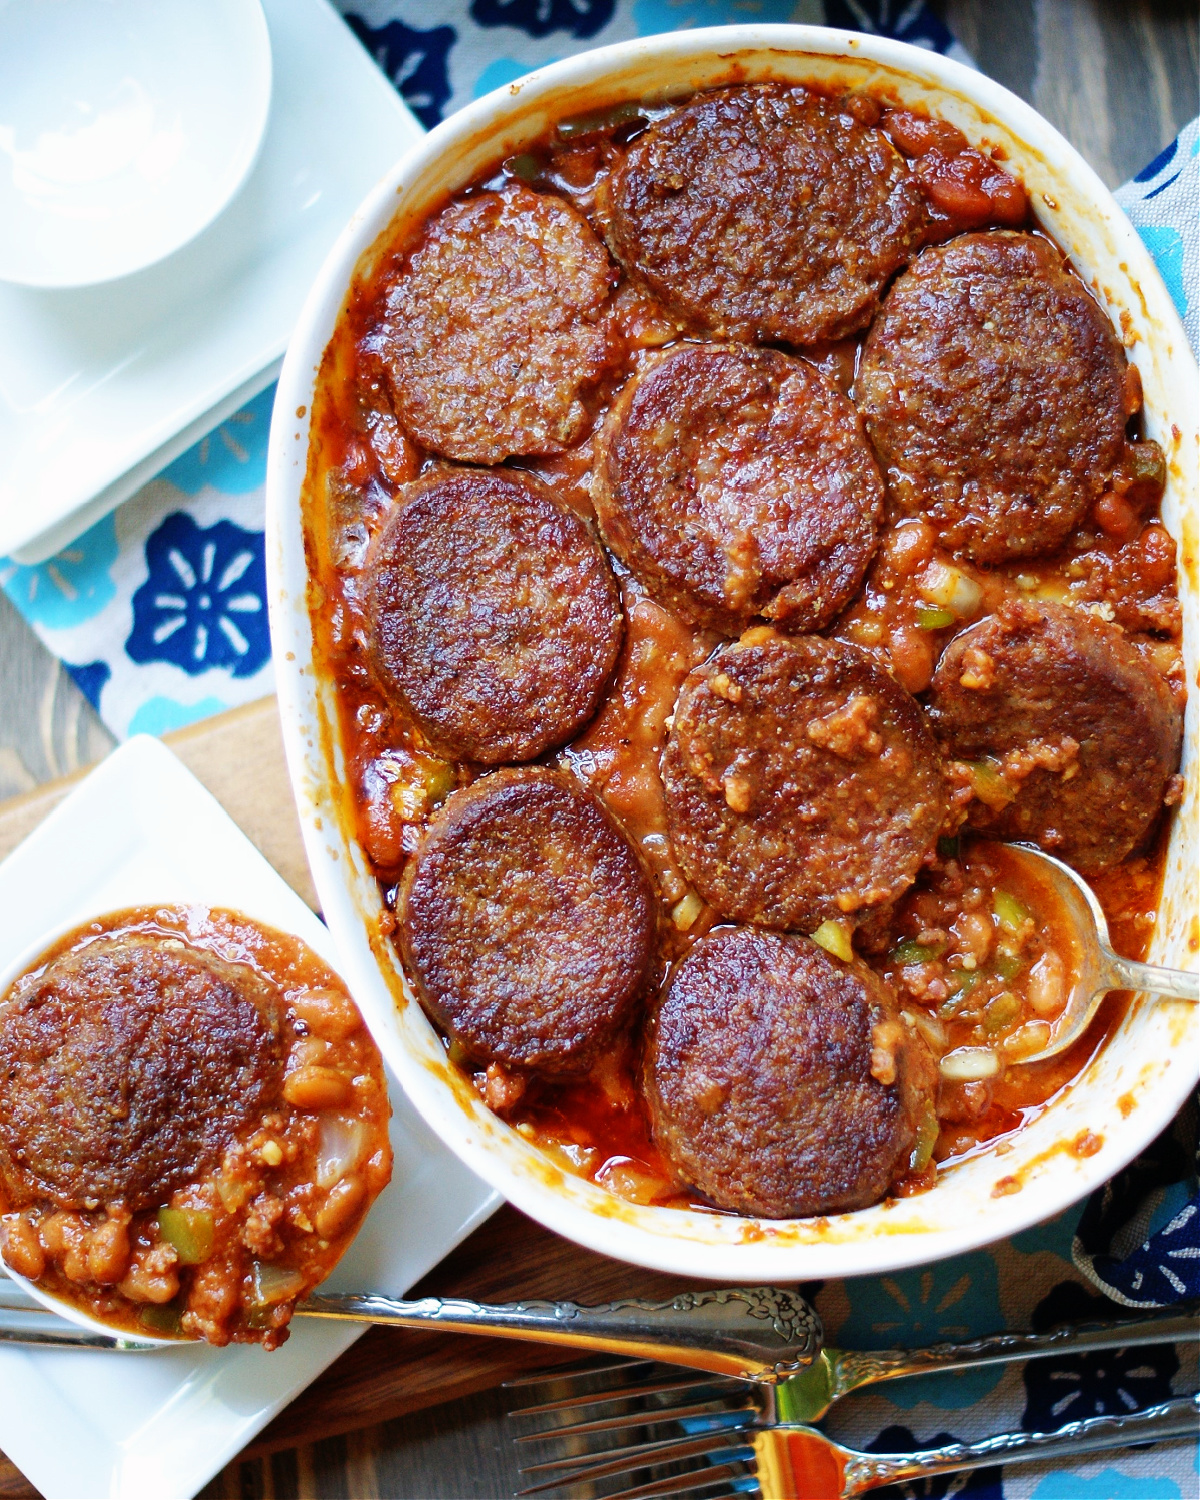 baked beans and ground sausage baked beans recipe